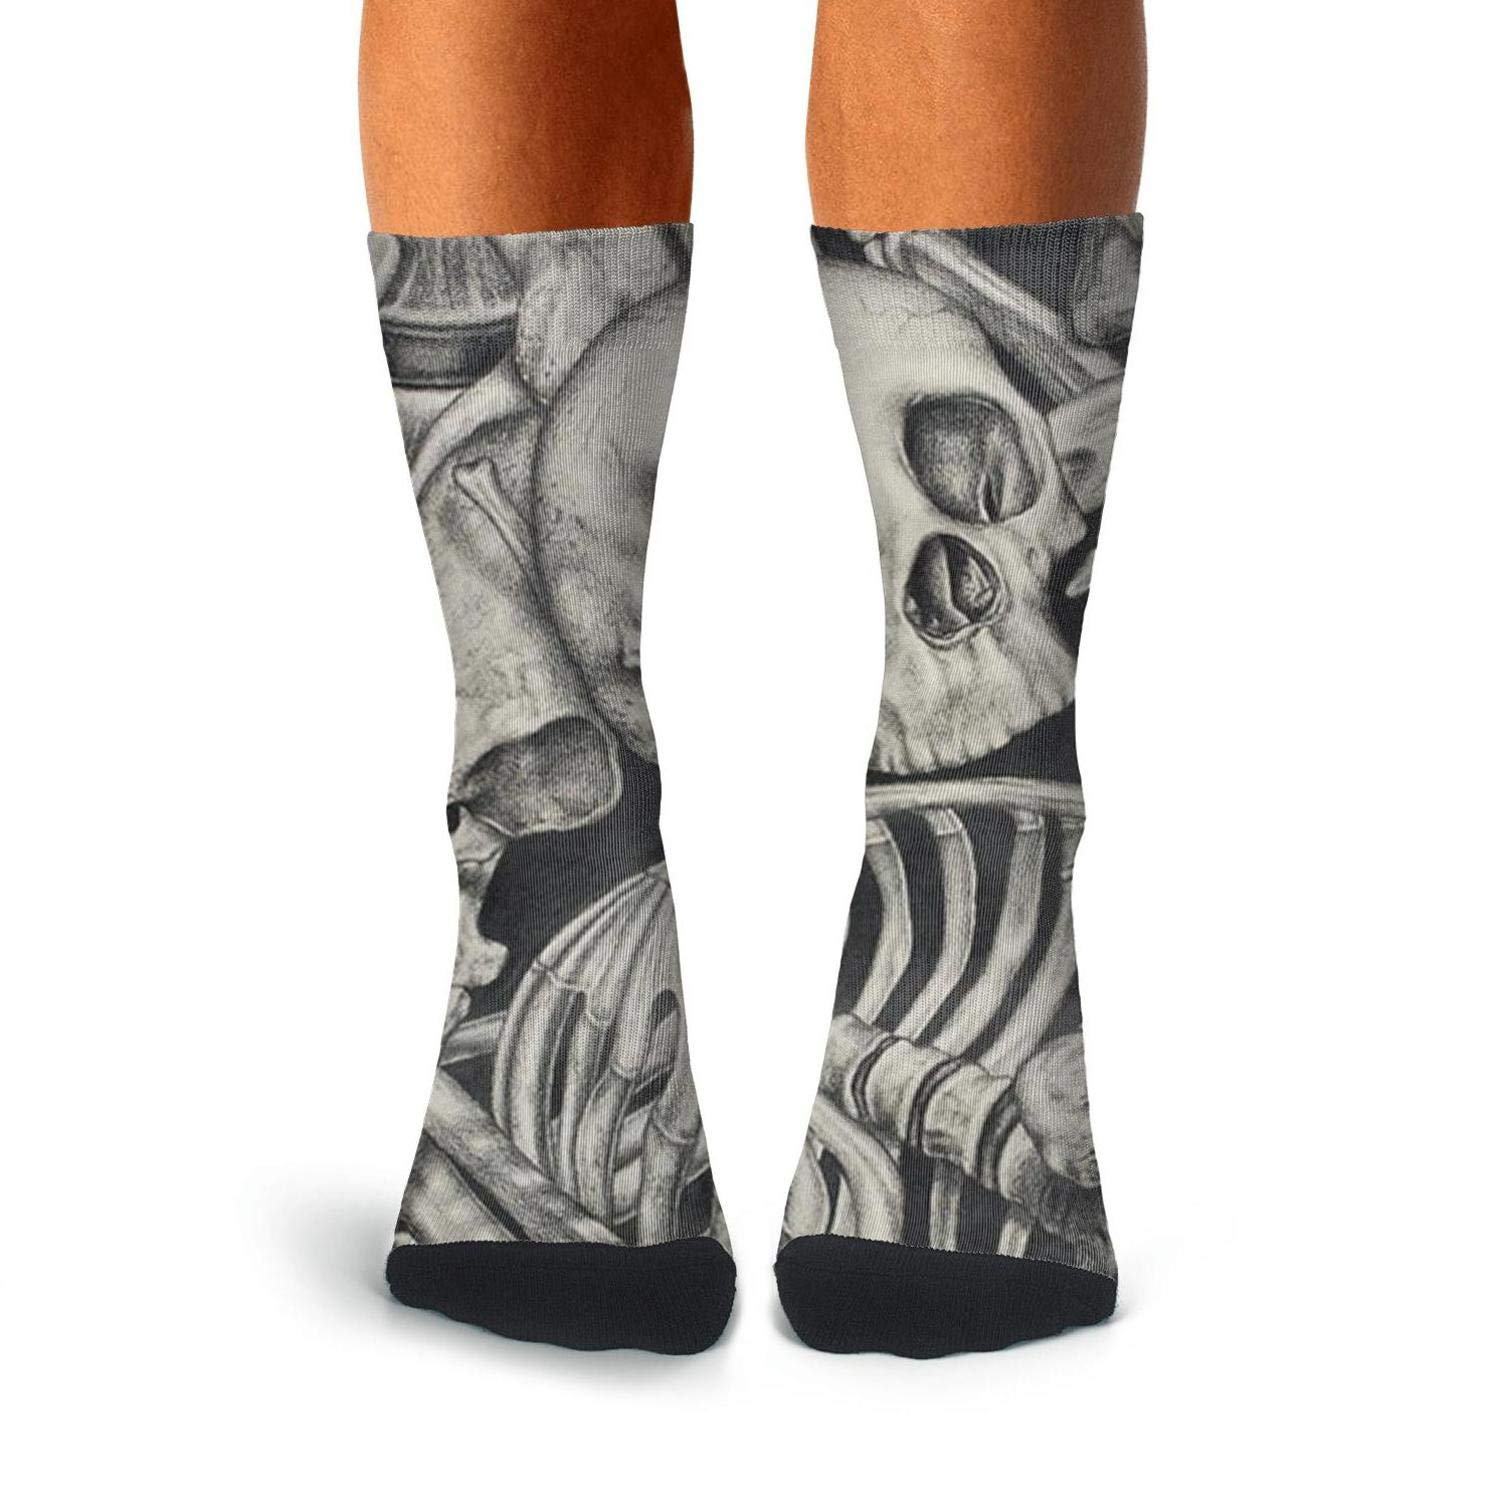 KCOSSH Skeleton Ribcage Unique Calf Socks Casual Crew Sock For Men Knee High Long Stockings